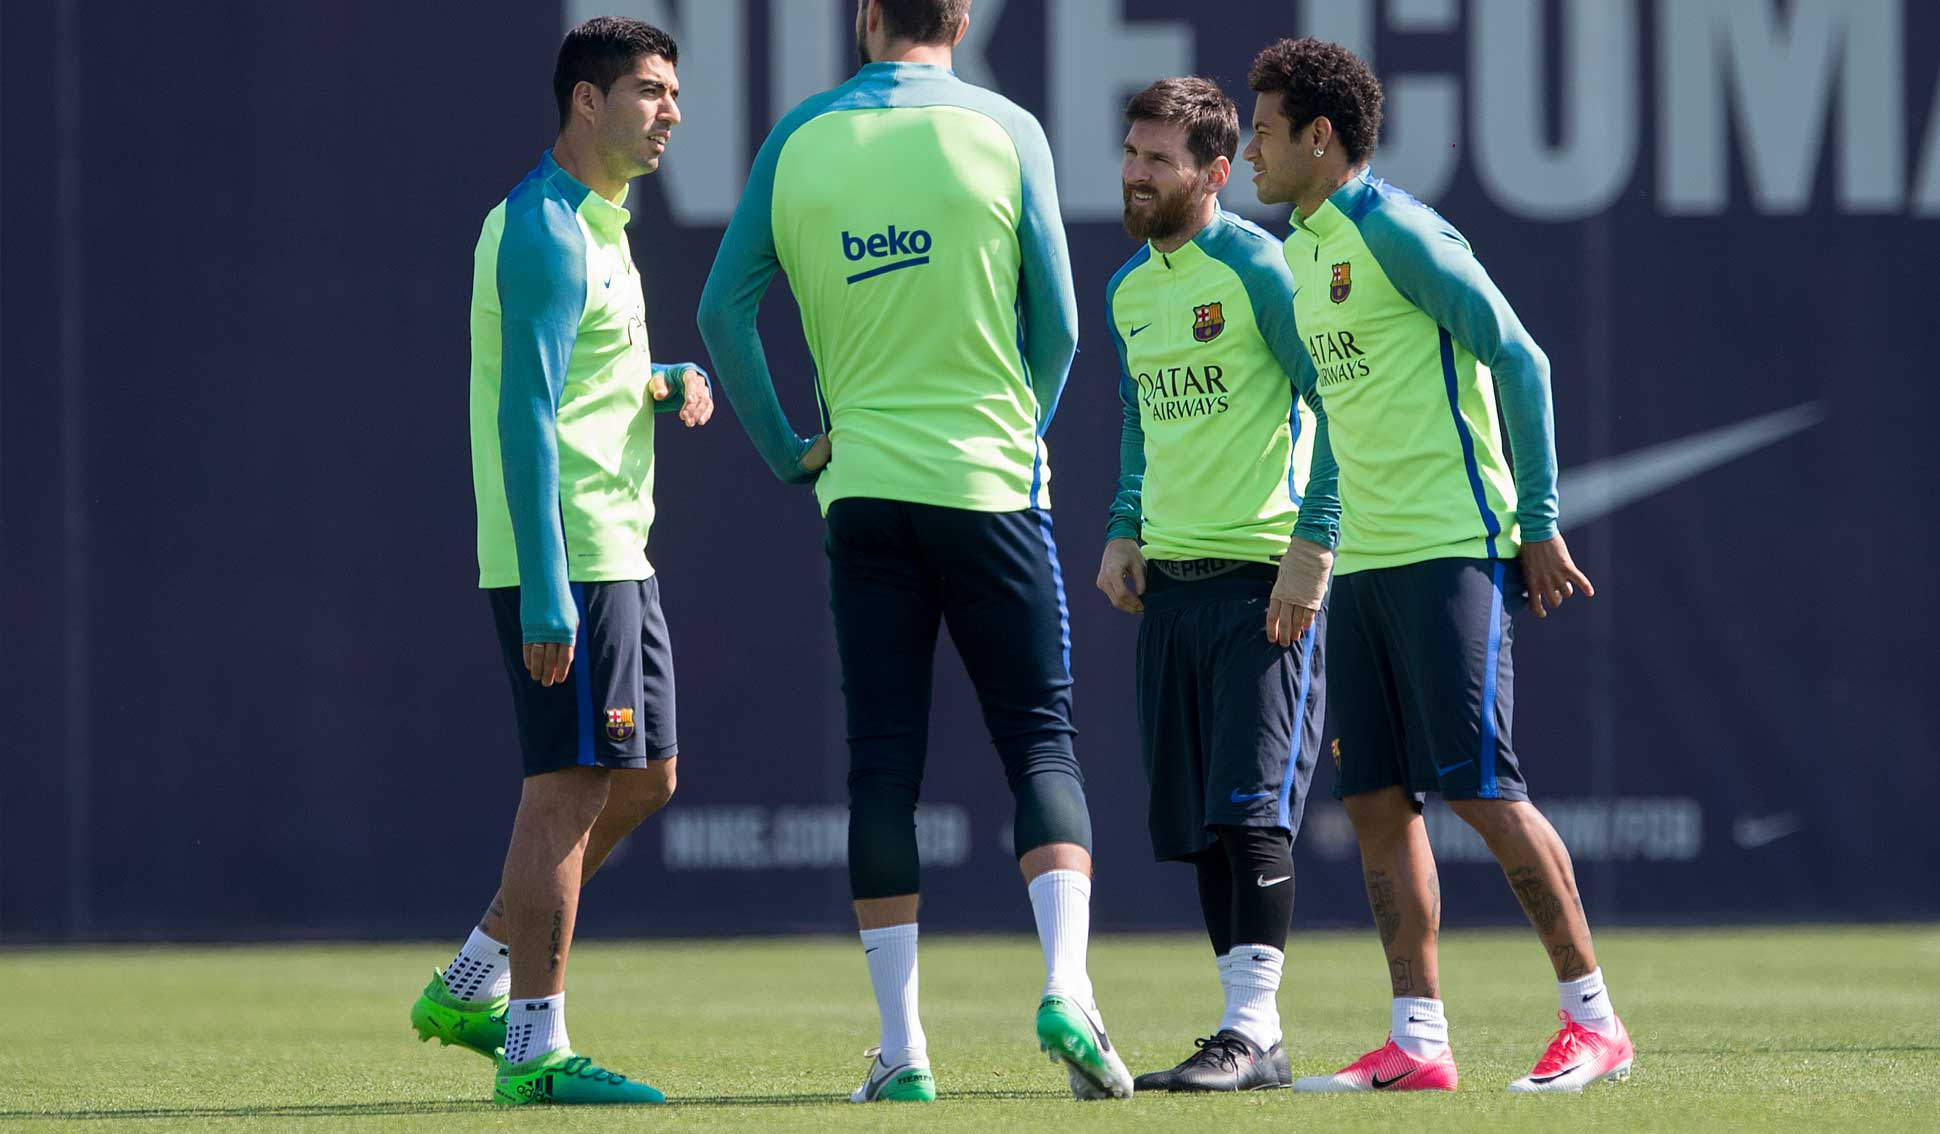 71be29584c31 Messi Trains In Blacked Out Unreleased adidas Football Boots ...